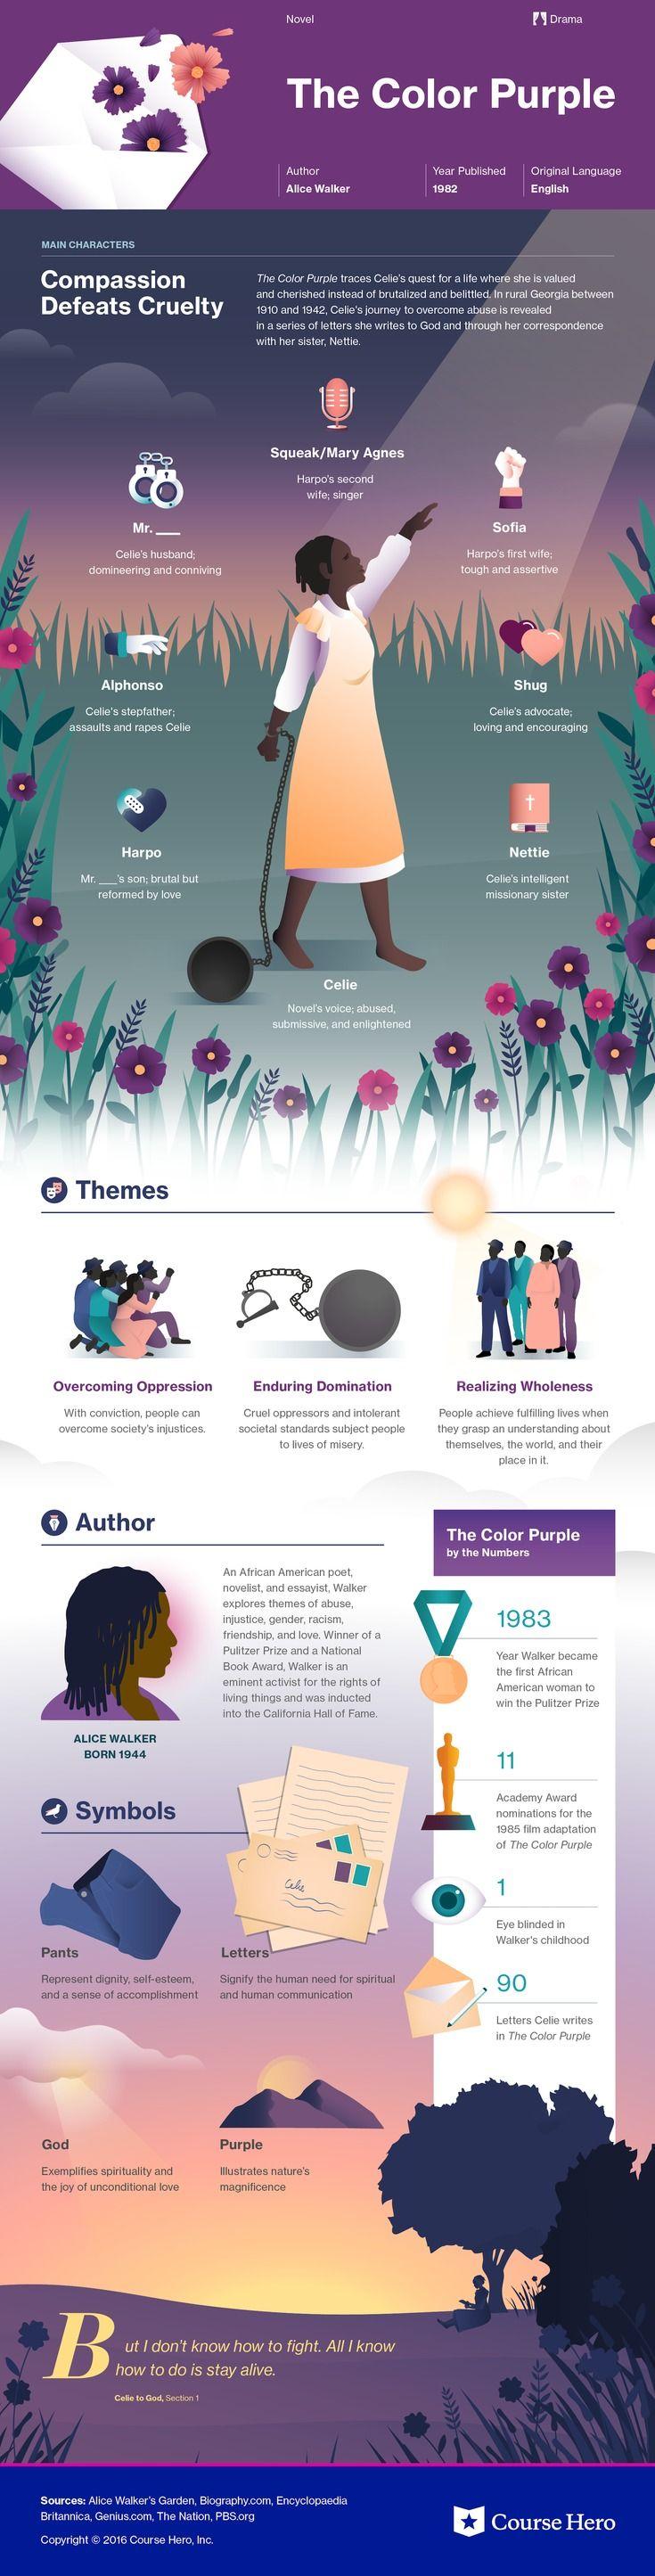 The Color Purple Infographic   My Literature Classroom   Pinterest ...